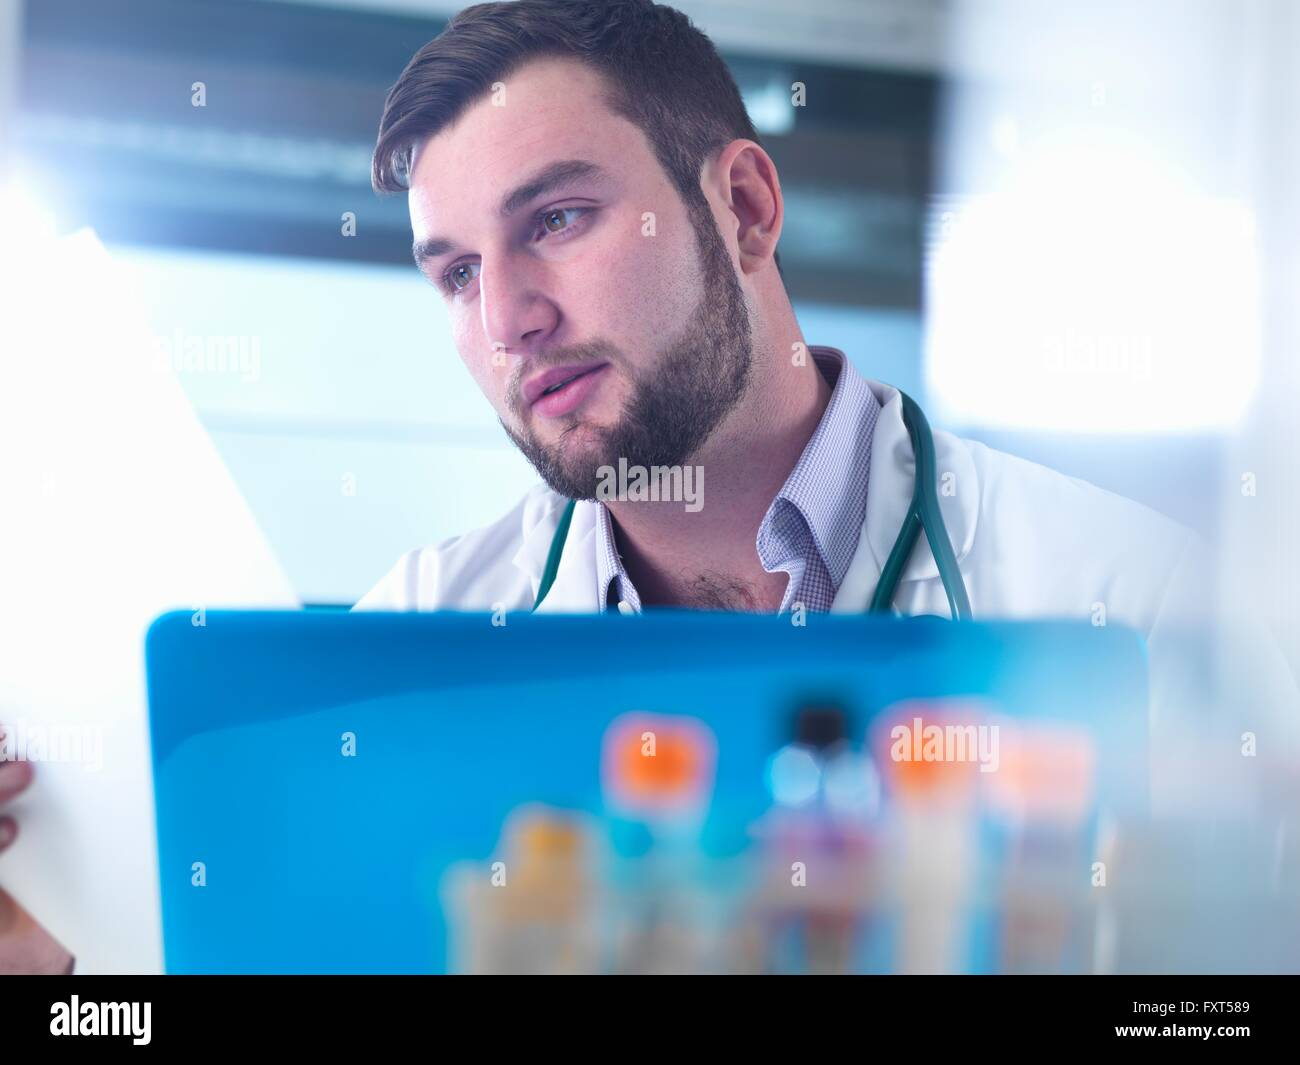 Doctor reading patient medical test results, samples in foreground - Stock Image